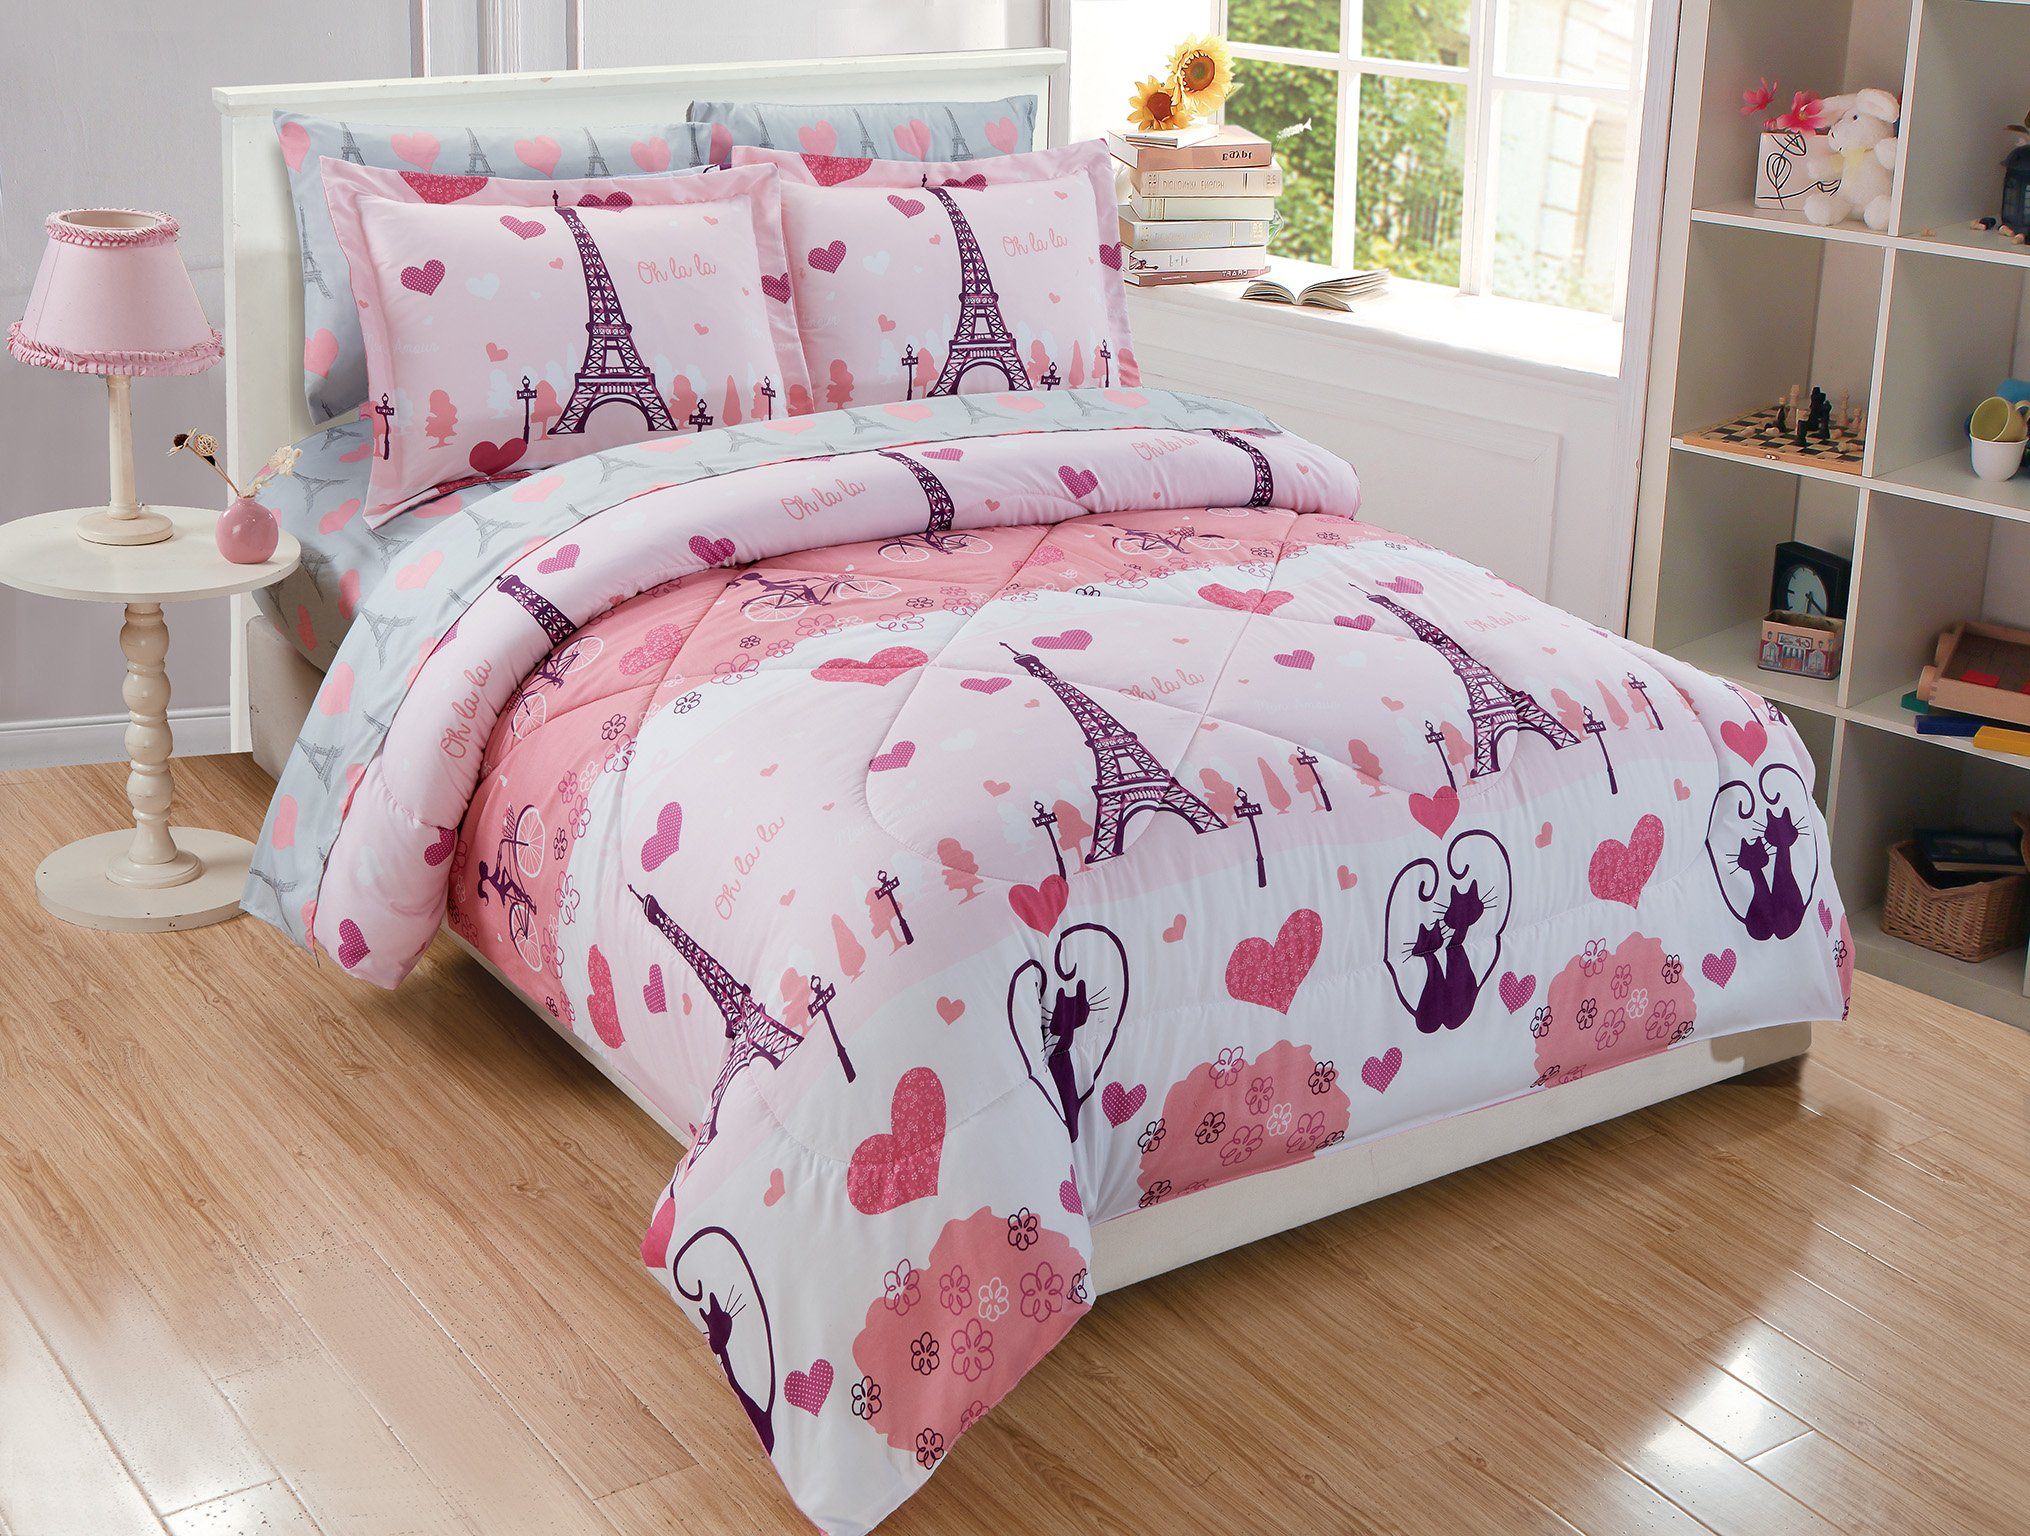 MK Home 7pc Full Comforter Set For Girls Paris Bedding Eiffel Tower Pink Grey New